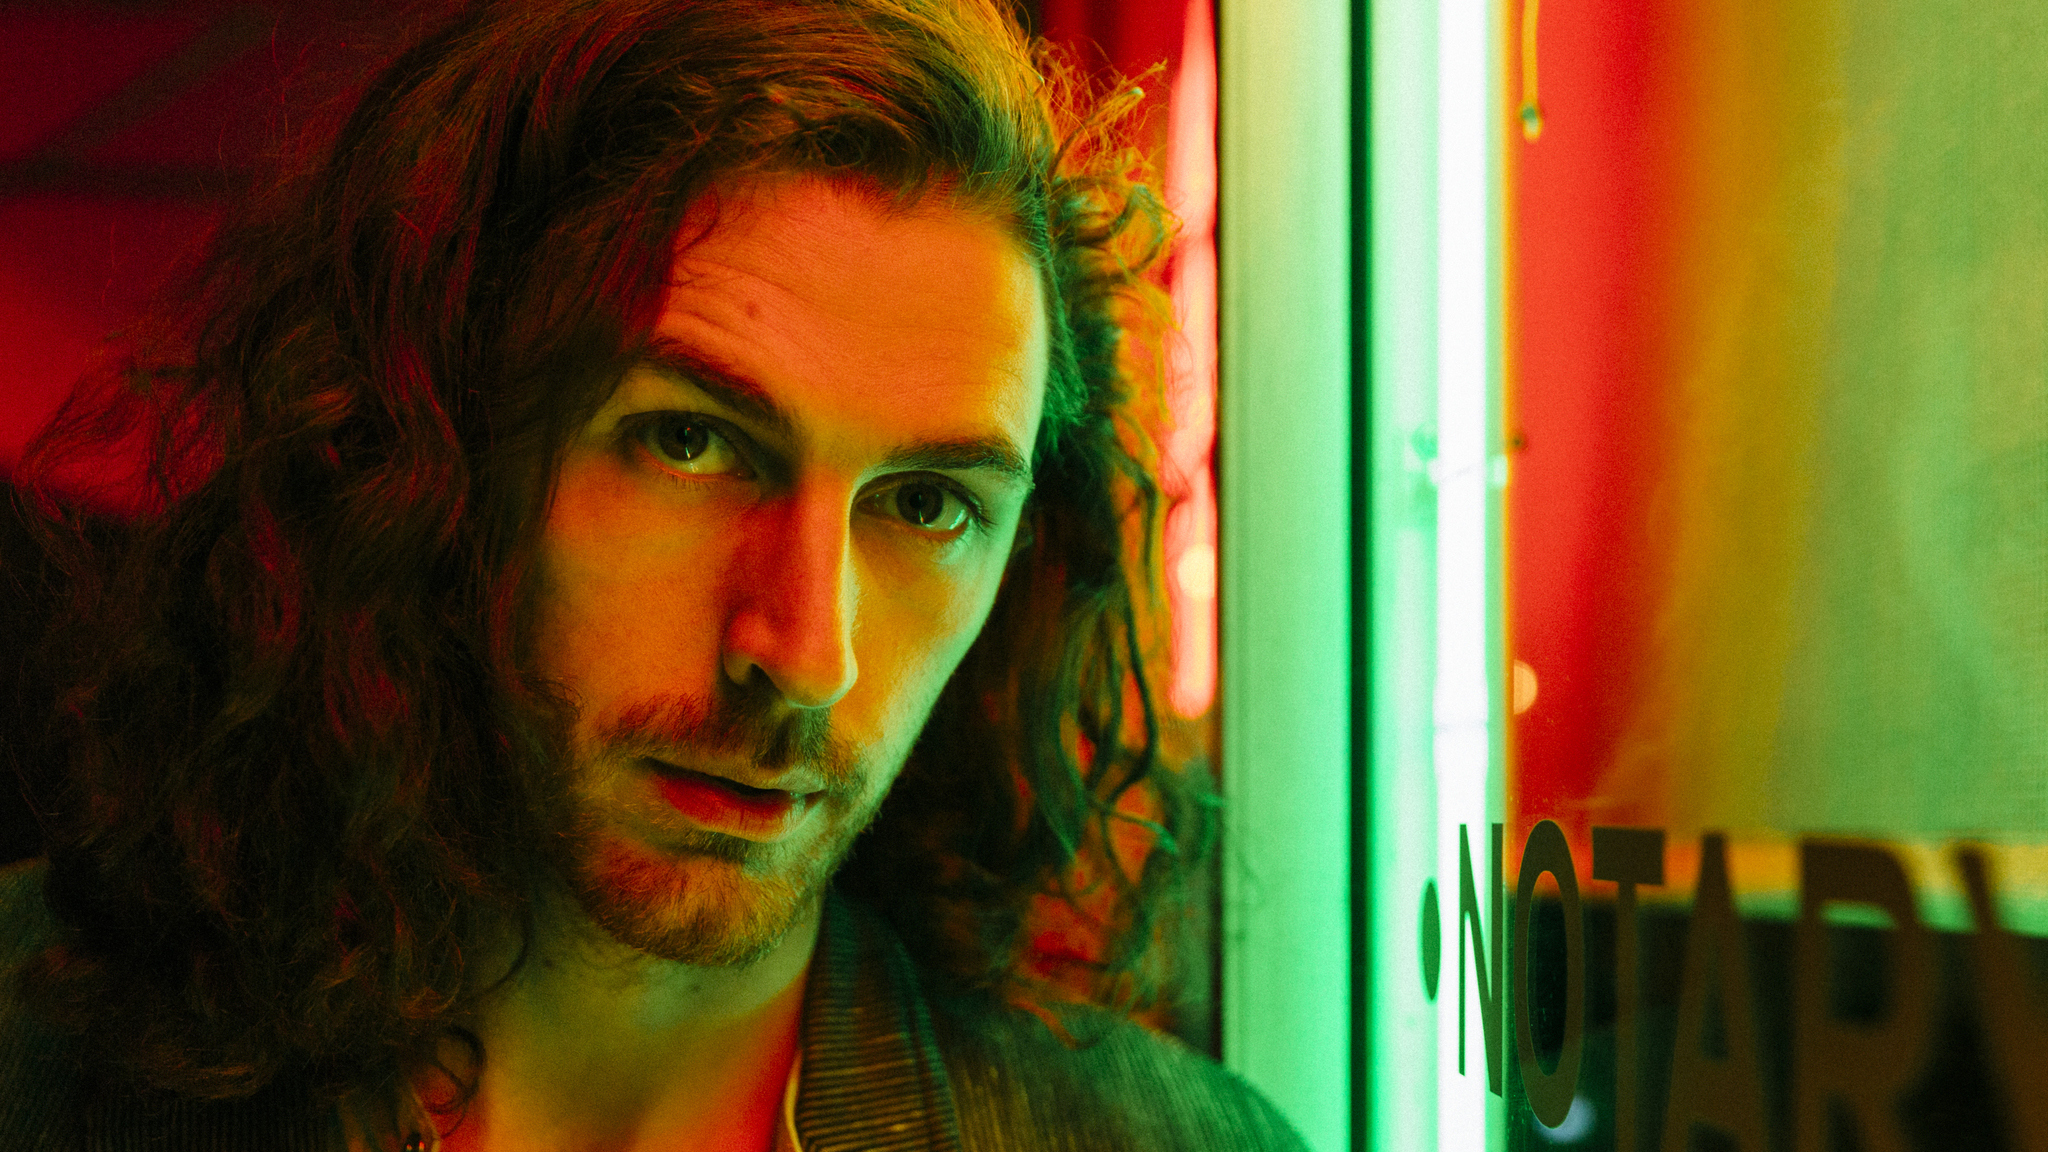 Hozier's sophomore album Wasteland, Baby! is out now.